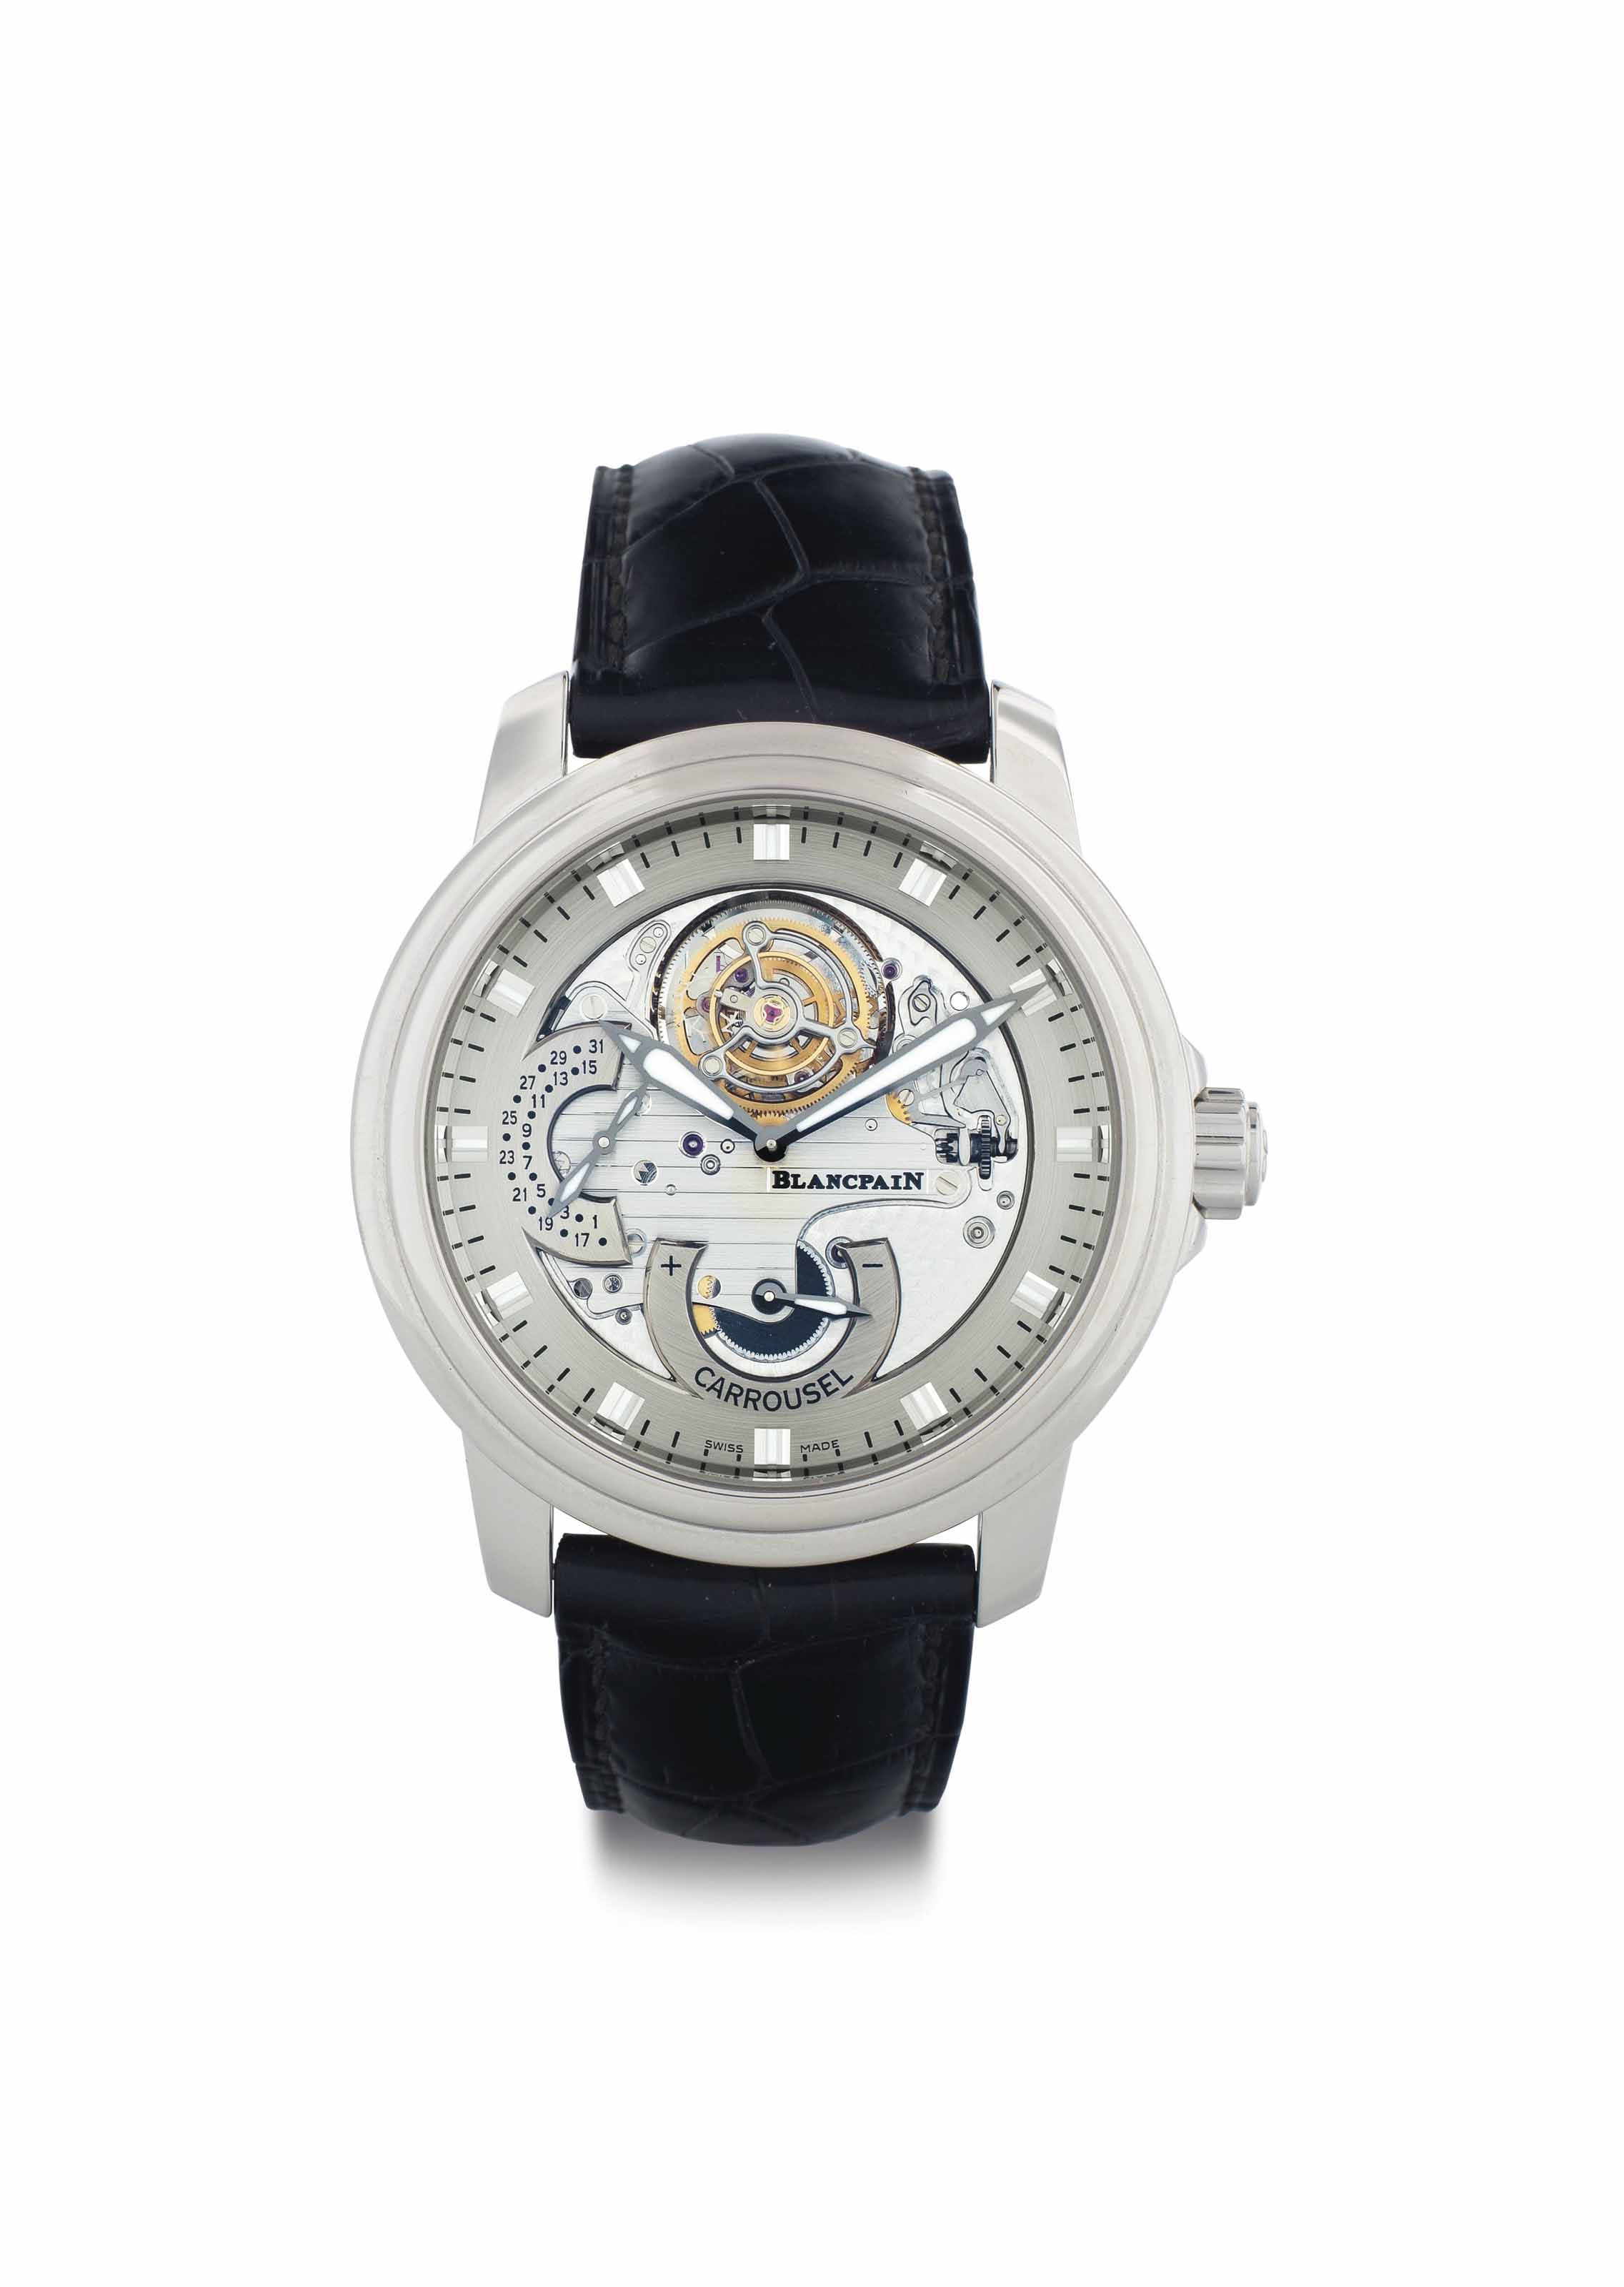 Blancpain. A Fine Limited Edition Platinum Automatic Tourbillon Wristwatch with Date